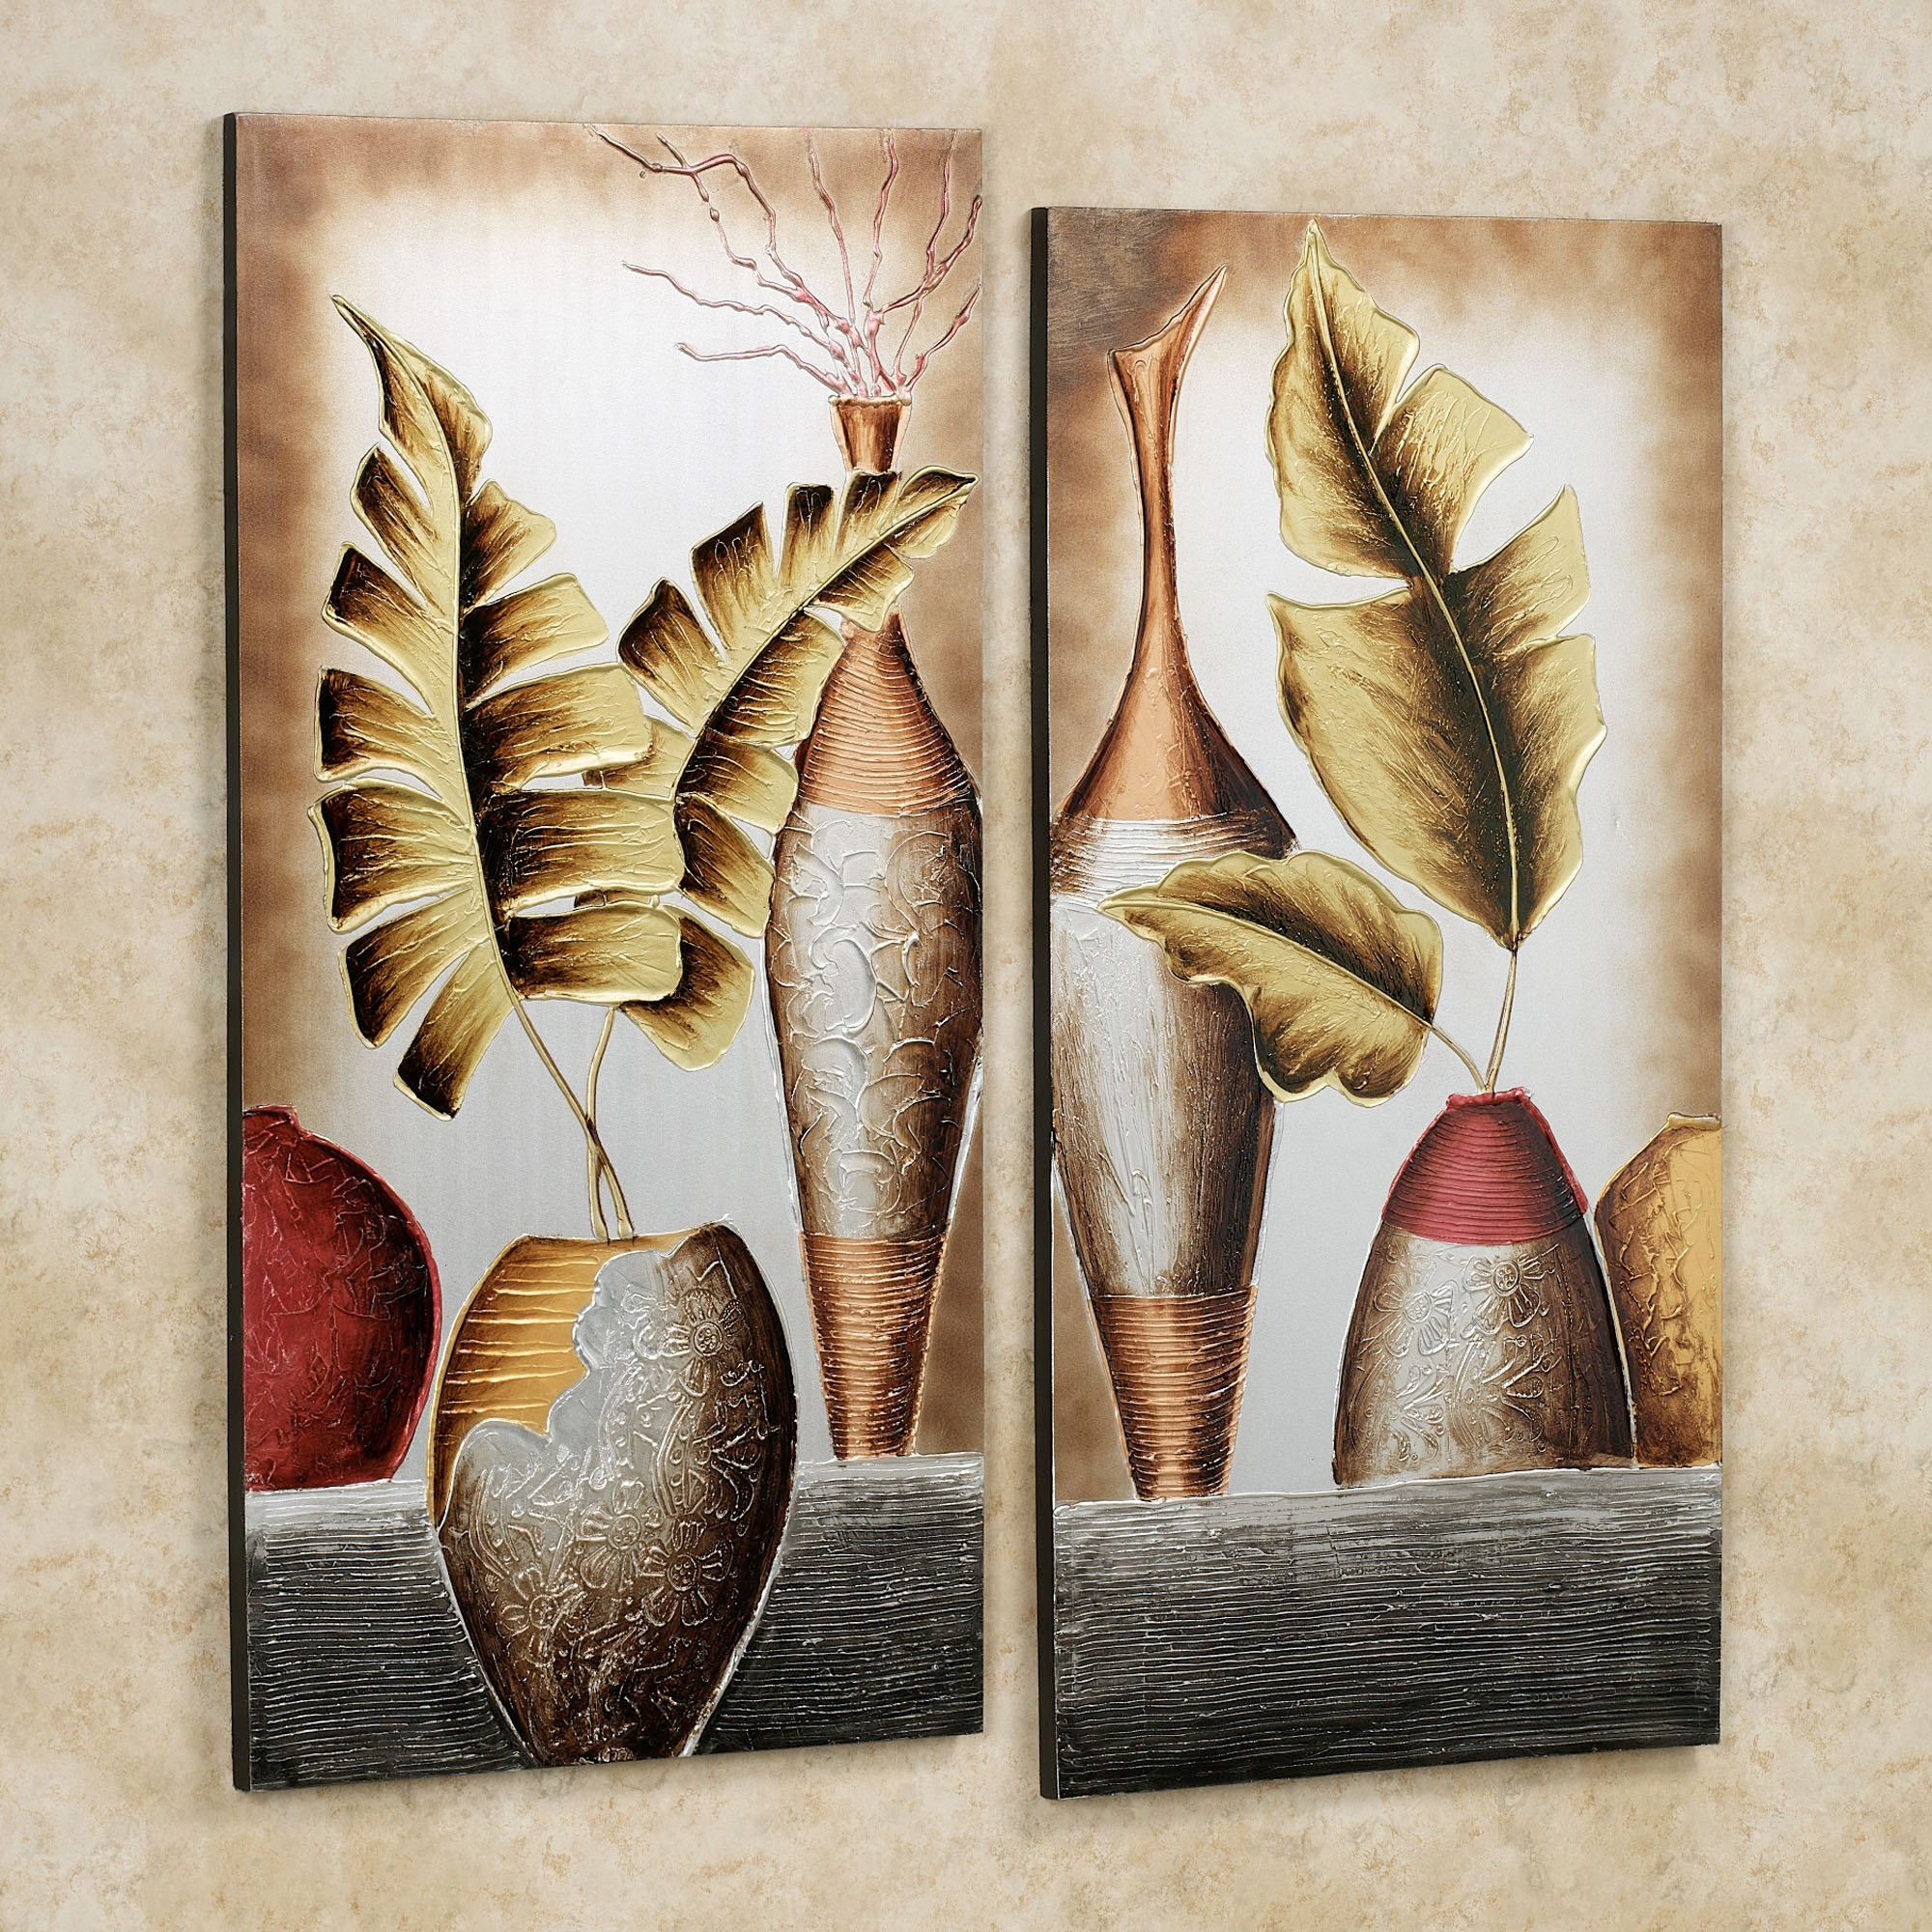 Best ideas about Canvas Wall Art Sets . Save or Pin Grecian Pottery Canvas Wall Art Set Now.